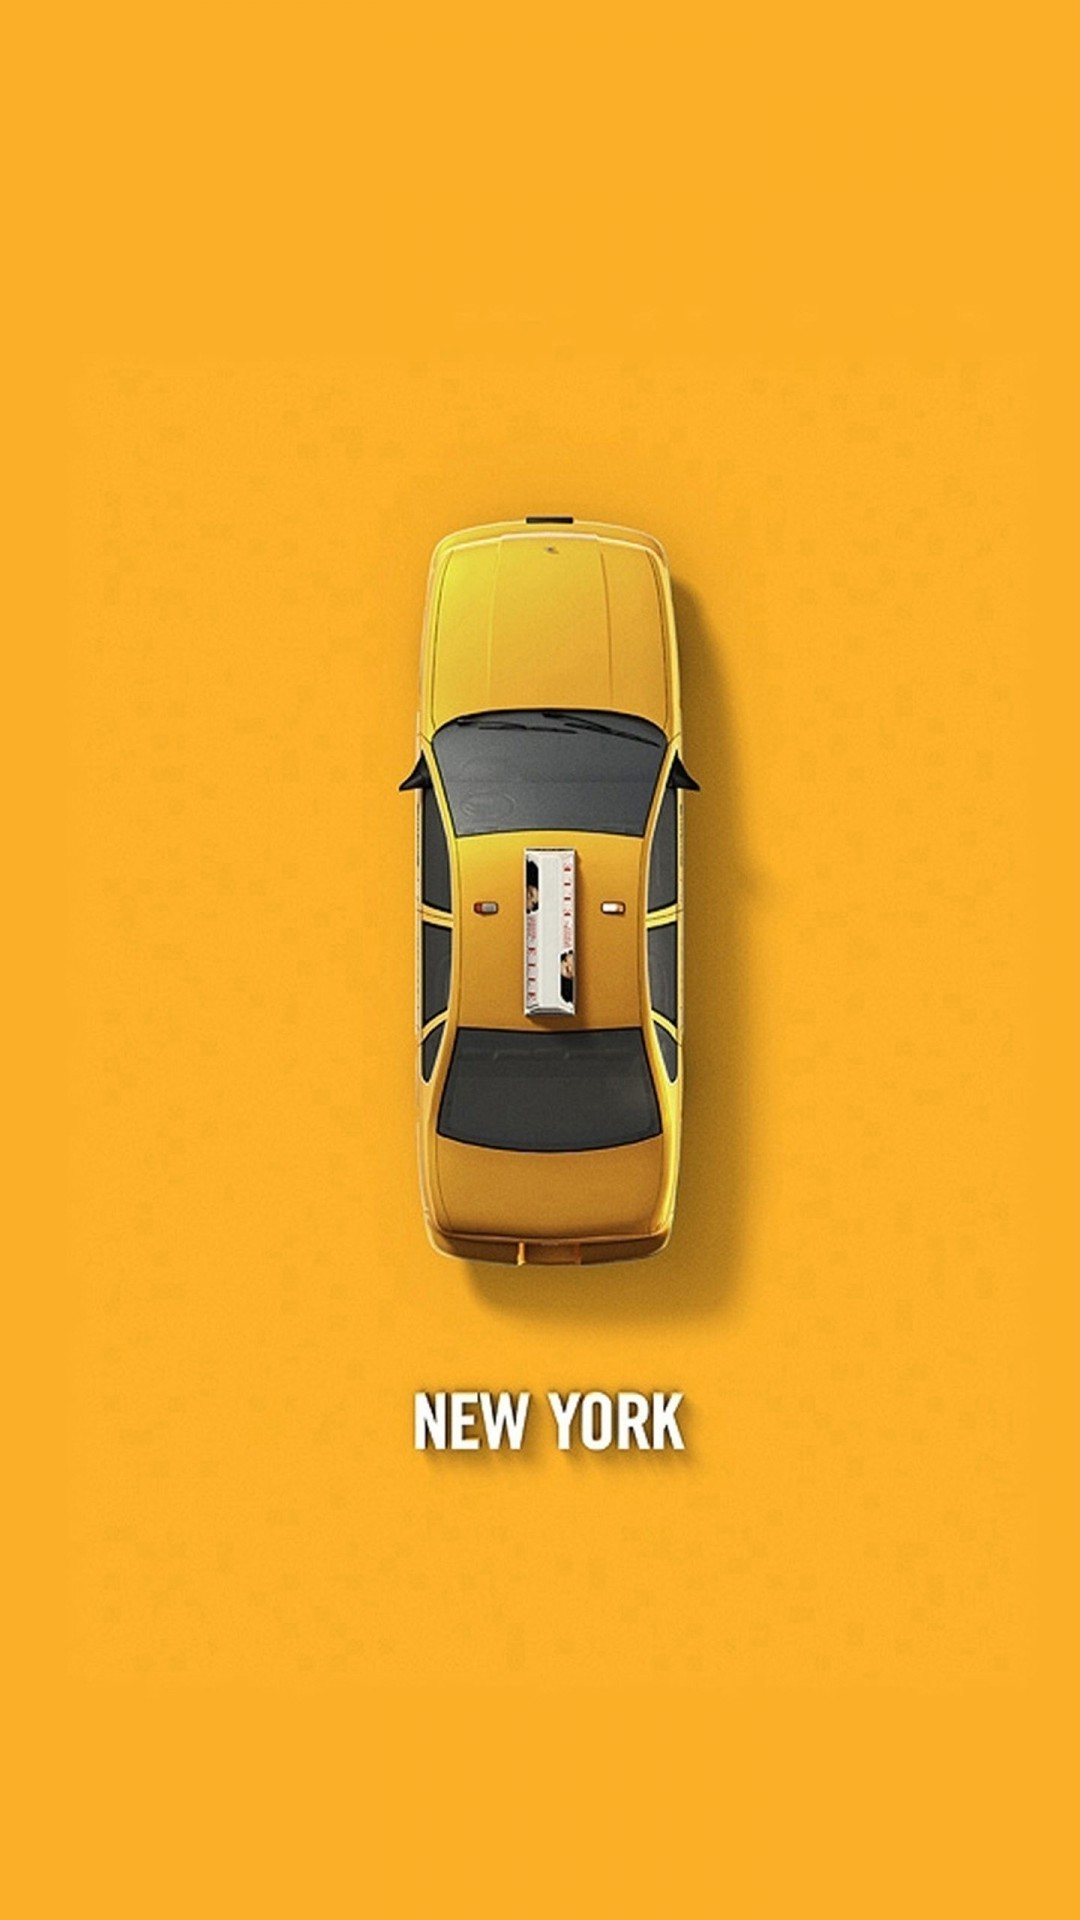 New York's Taxi